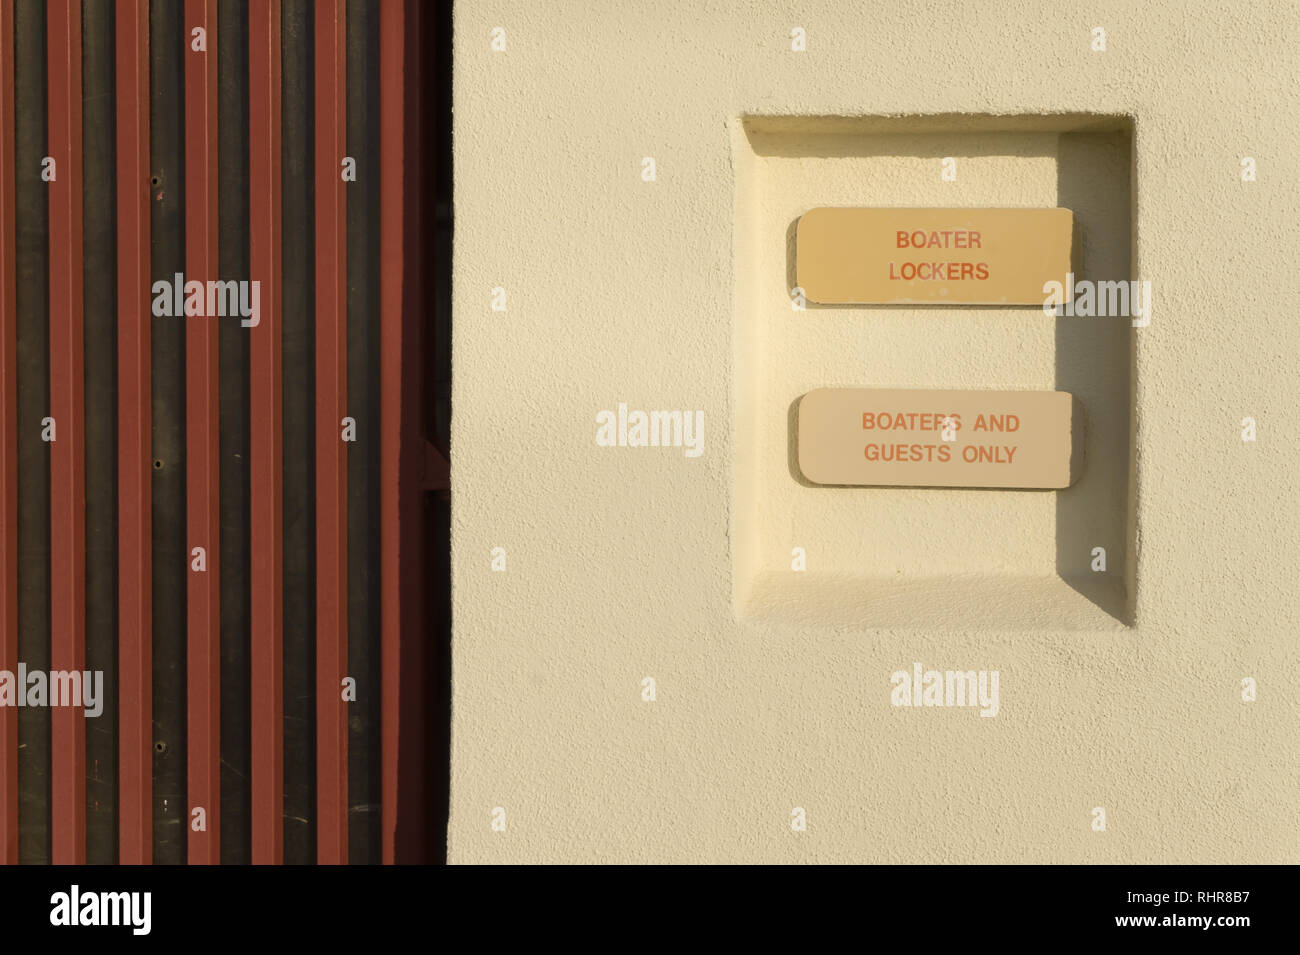 Boater Lockers, Boaters and Guests Only - Stock Image